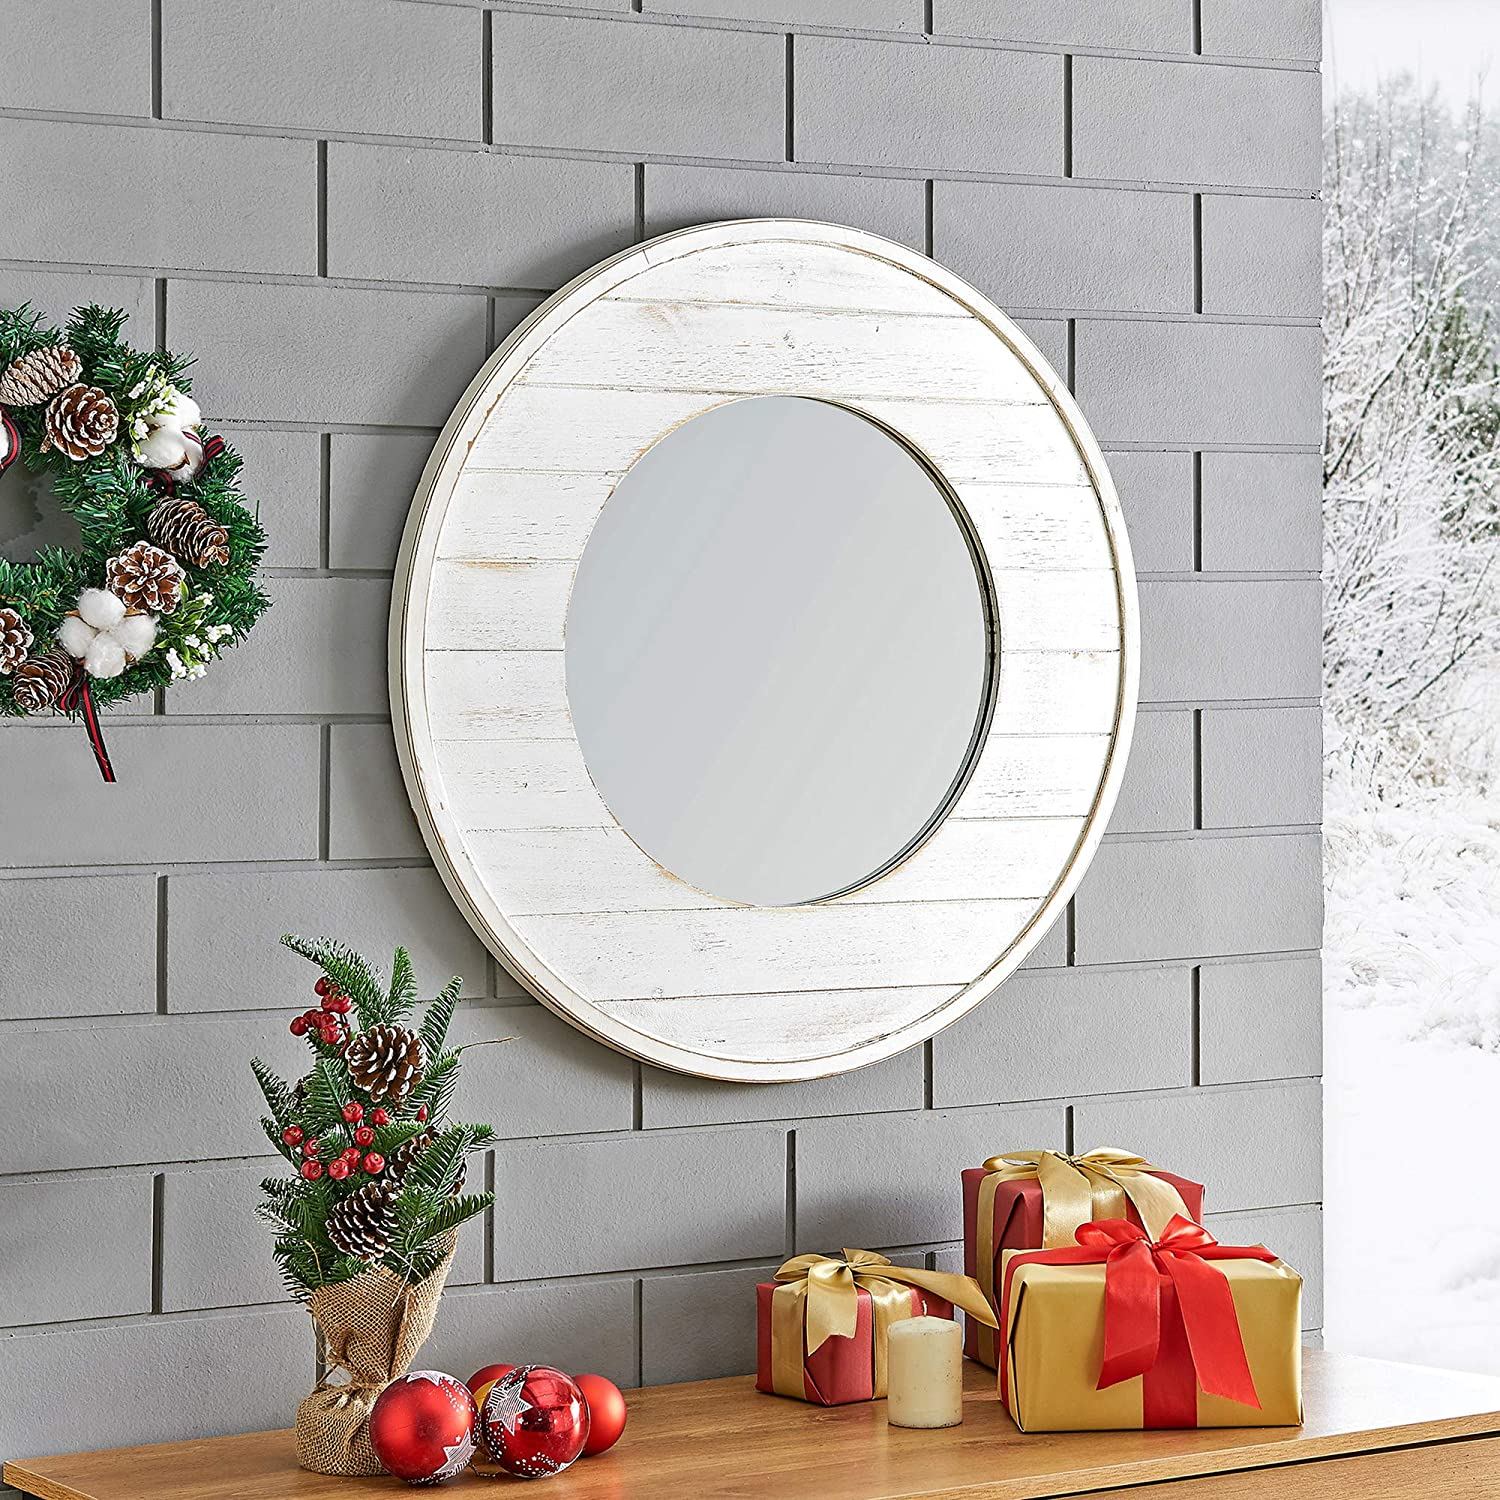 "FirsTime & Co. Ellison Shiplap Accent Wall Mirror, 27"", Aged White"